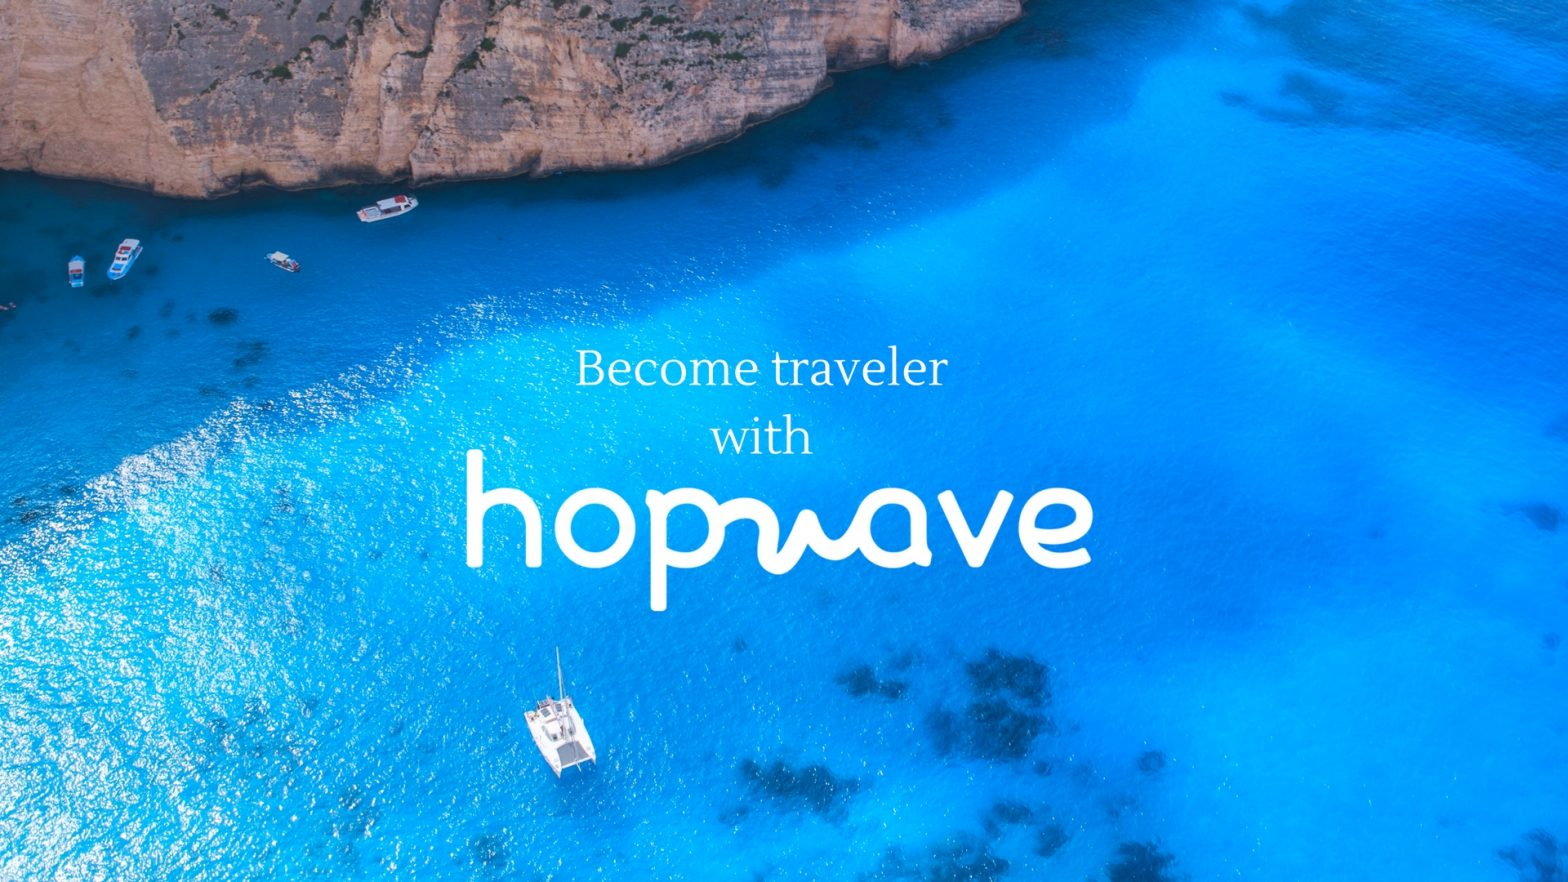 To become a hopwaver is to become a traveler